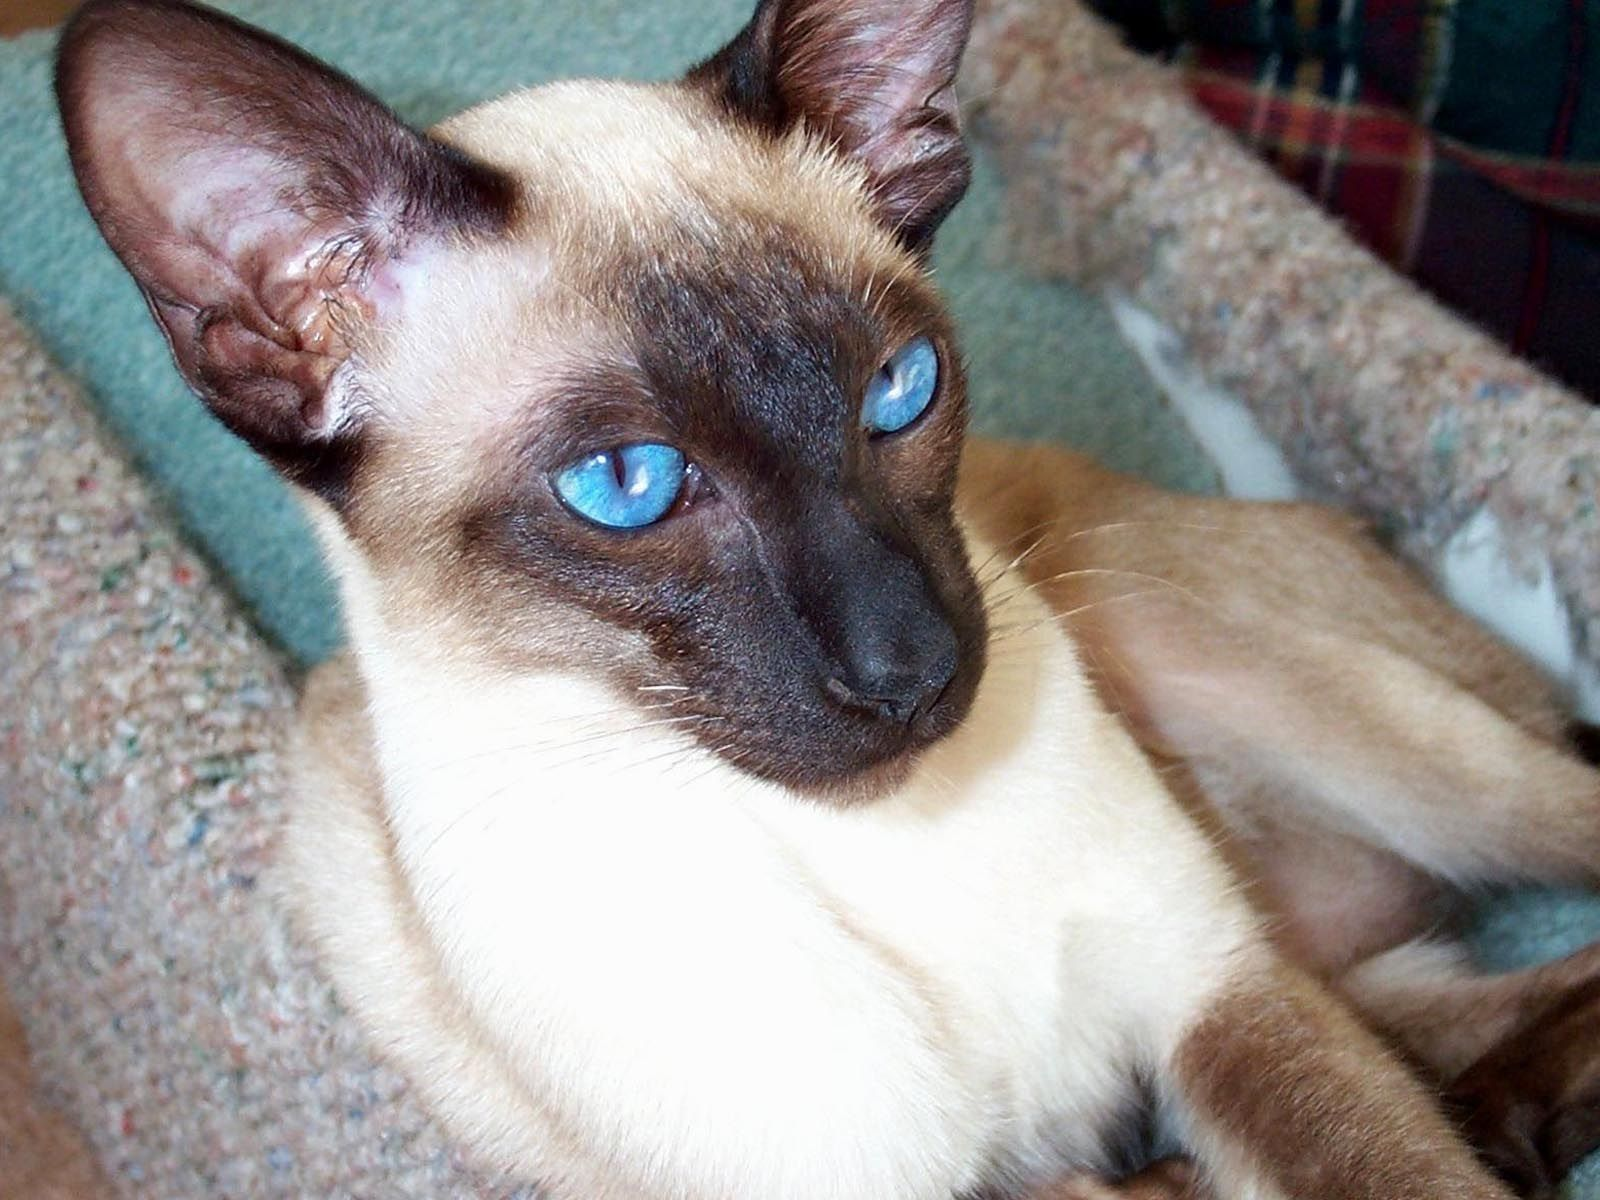 Pictures Of Siamese Cats Eyes Siamese Cat With Blue Eyes Siamese Cats Funny Siamese Cats Blue Point Siamese Cats